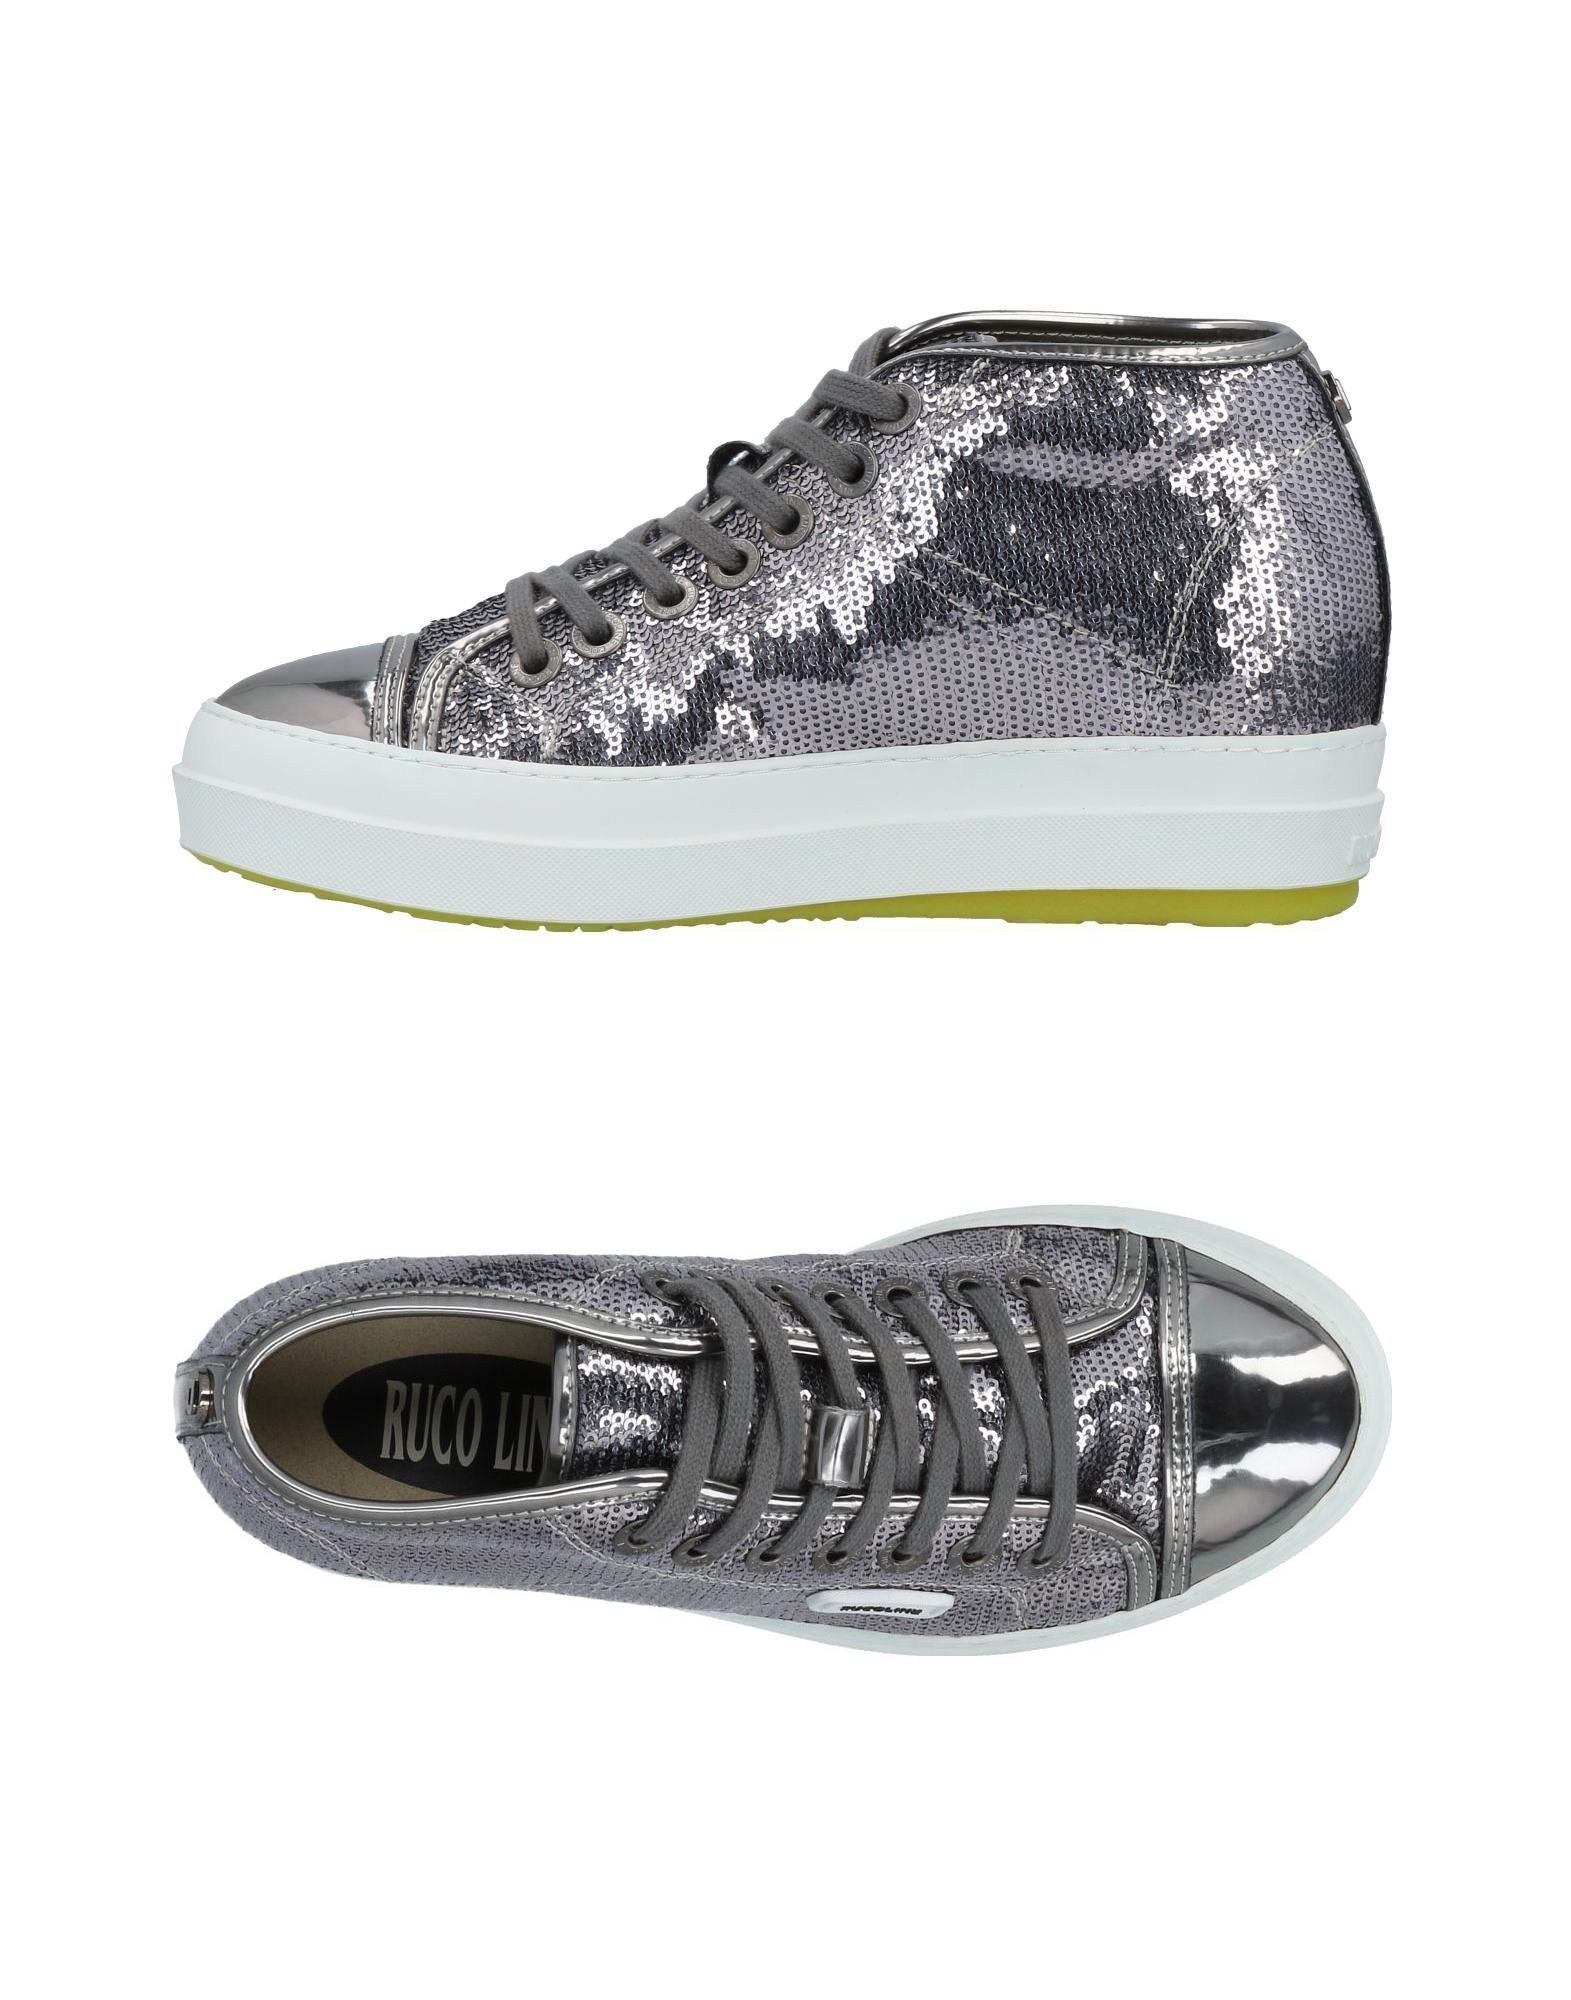 Sneakers Ruco Line Donna - 11478190LJ